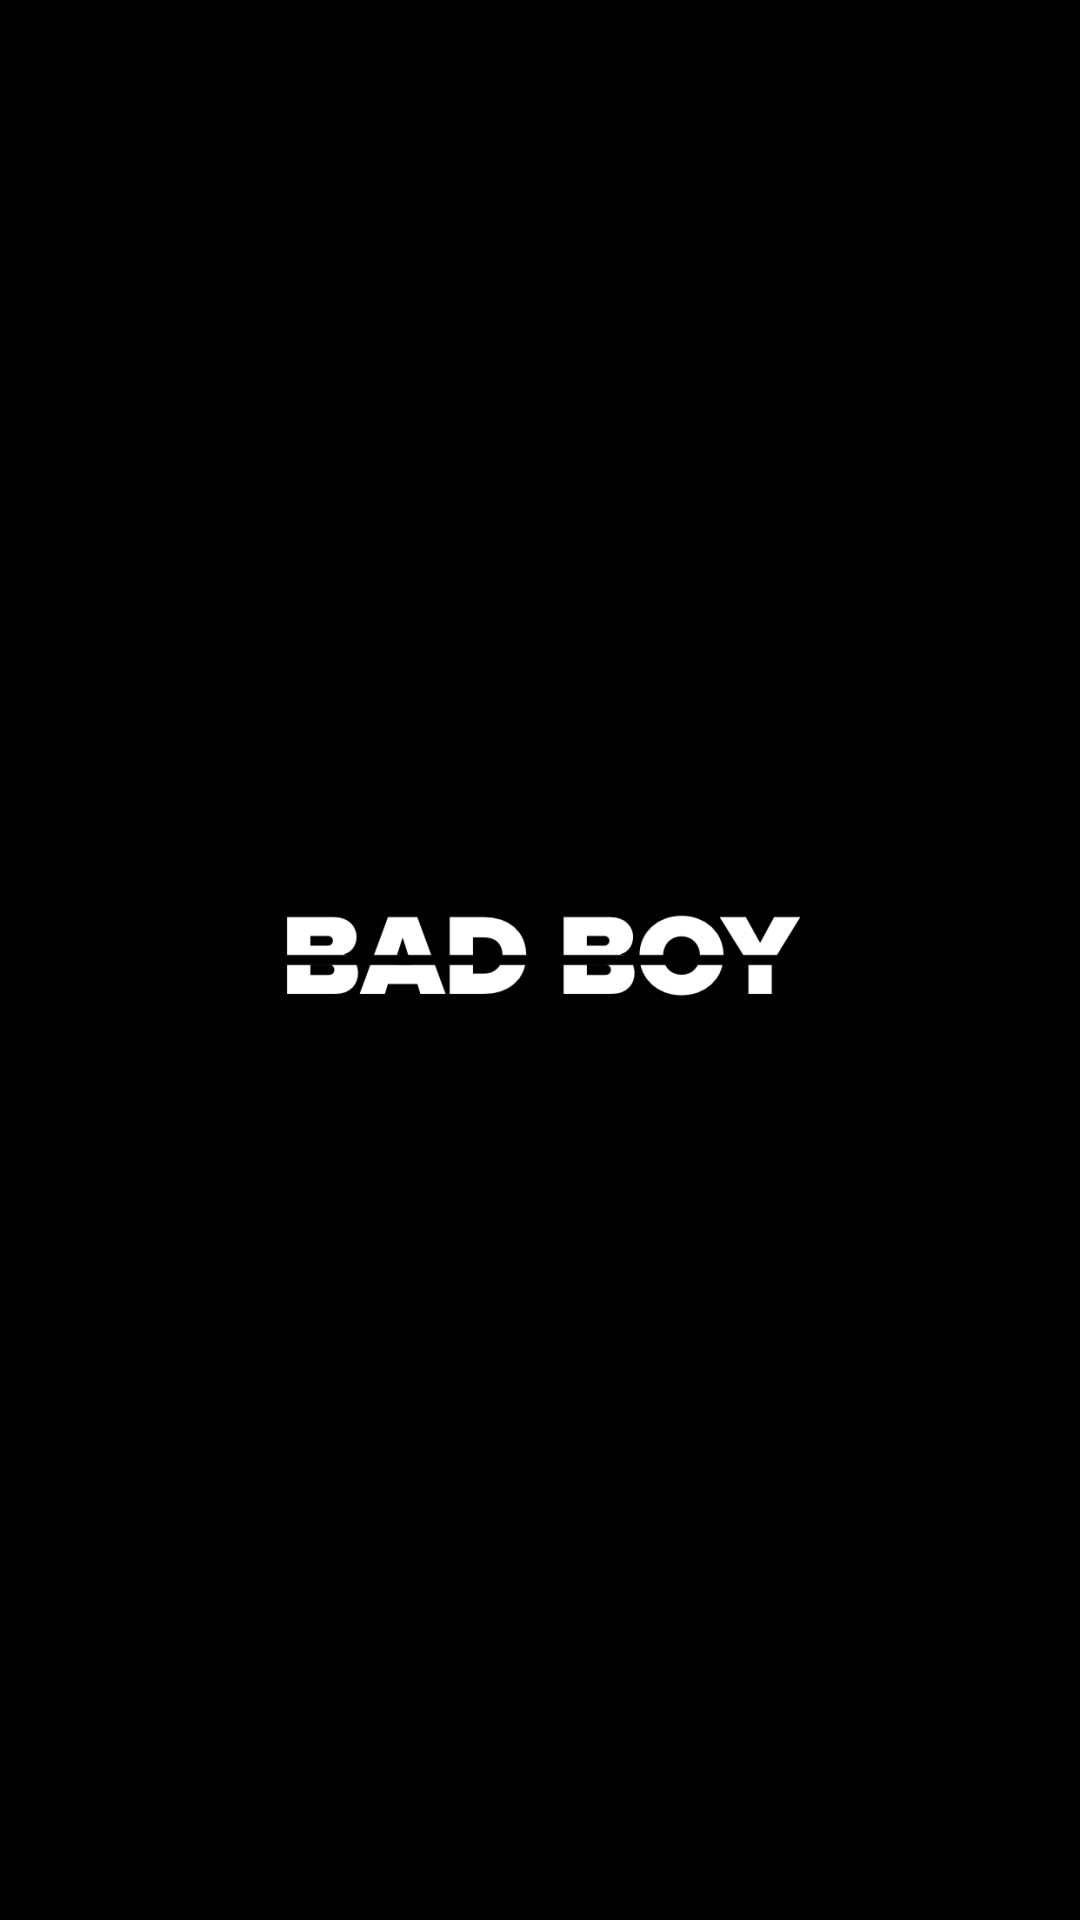 Bad Boy Bad Boy Redvelvet Boys Wallpaper Bad Boys Tumblr Hd Cool Wallpapers